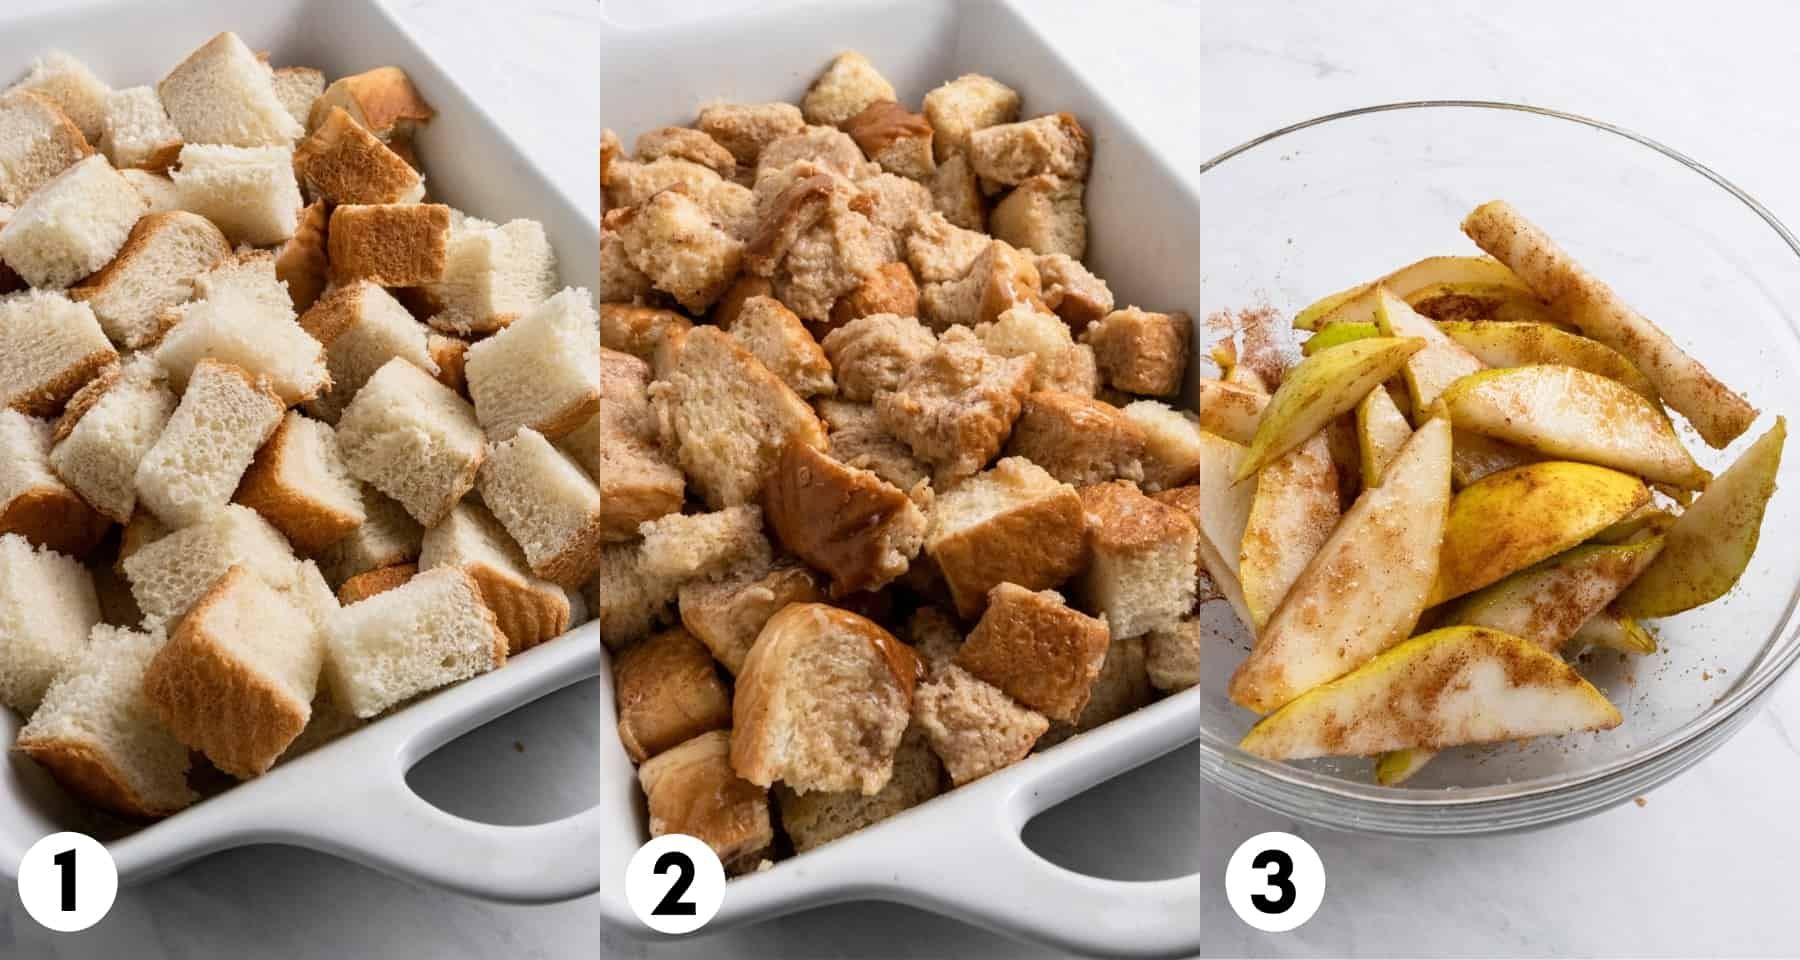 Pieces of bread in pan with spiced pears and french toast mixture.